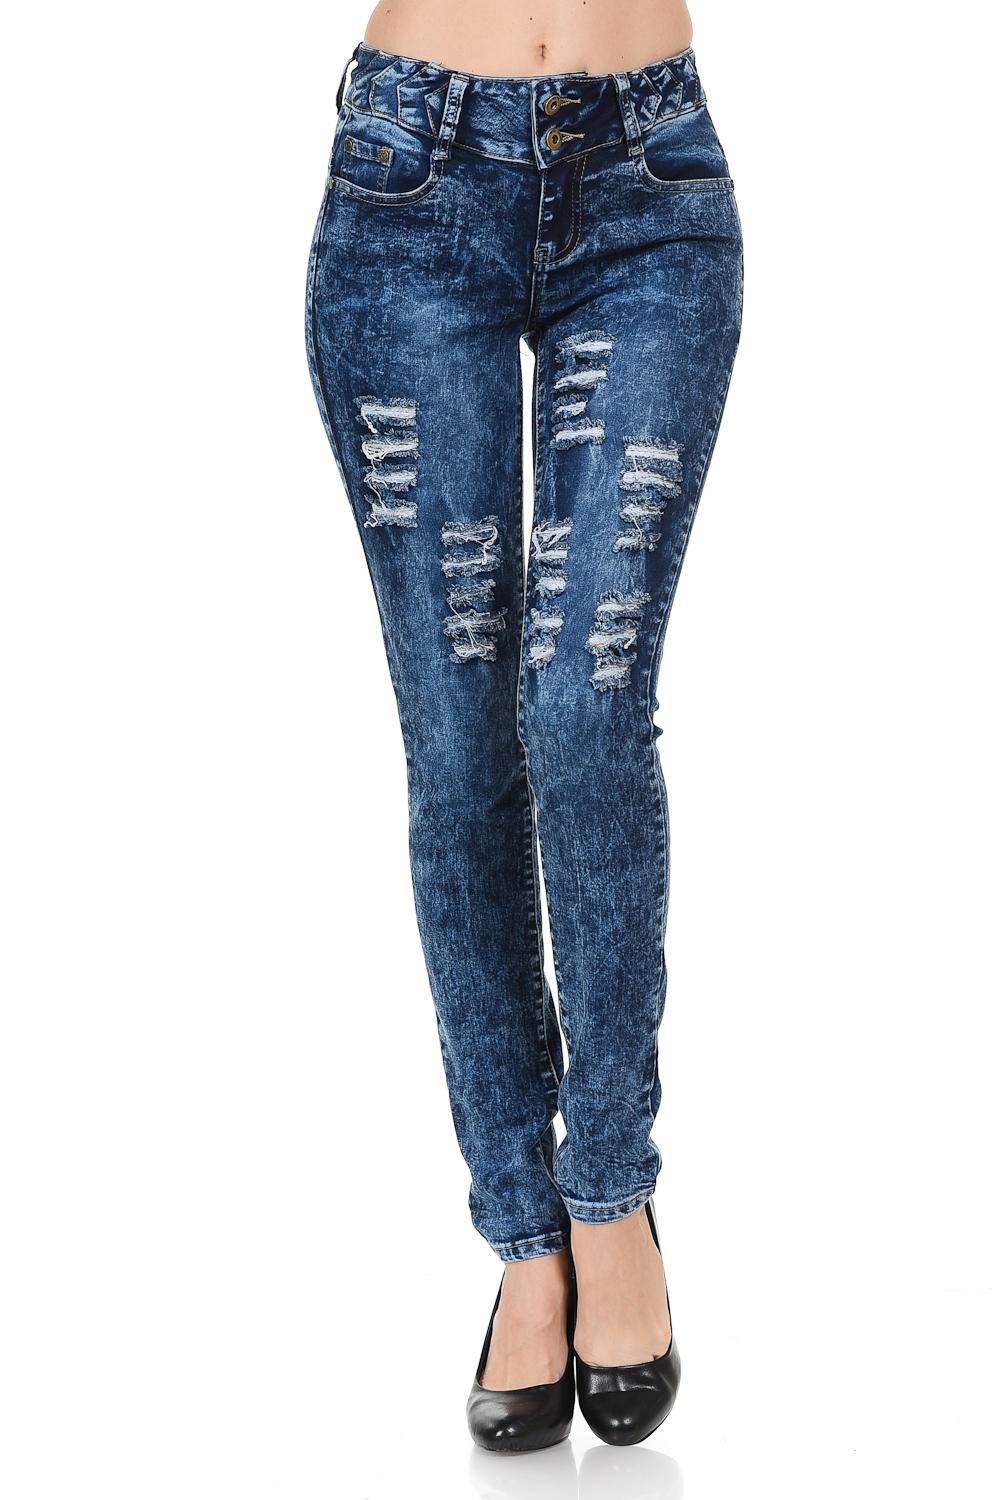 PUSH UP COLOMBIAN JEANS BUTT LIFTER Colombian designers JEANS LEVANTA COLA